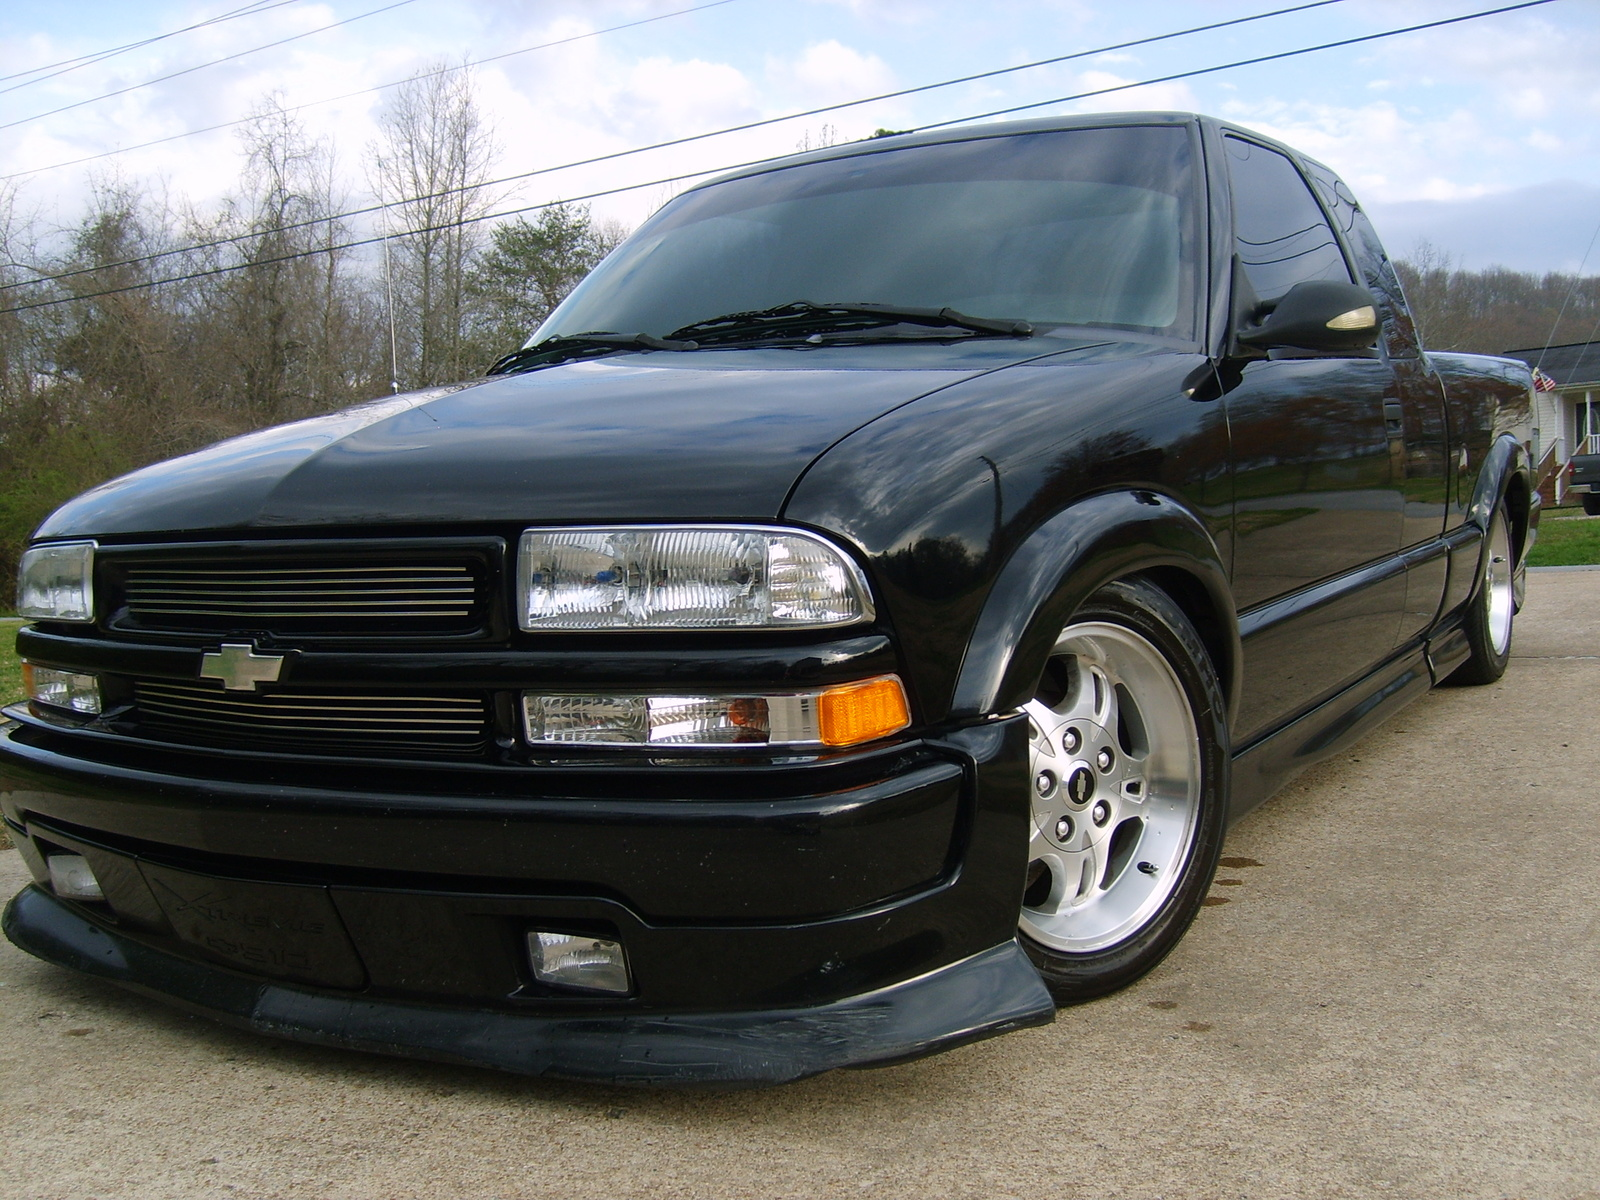 2002 chevrolet s 10 pictures cargurus. Black Bedroom Furniture Sets. Home Design Ideas